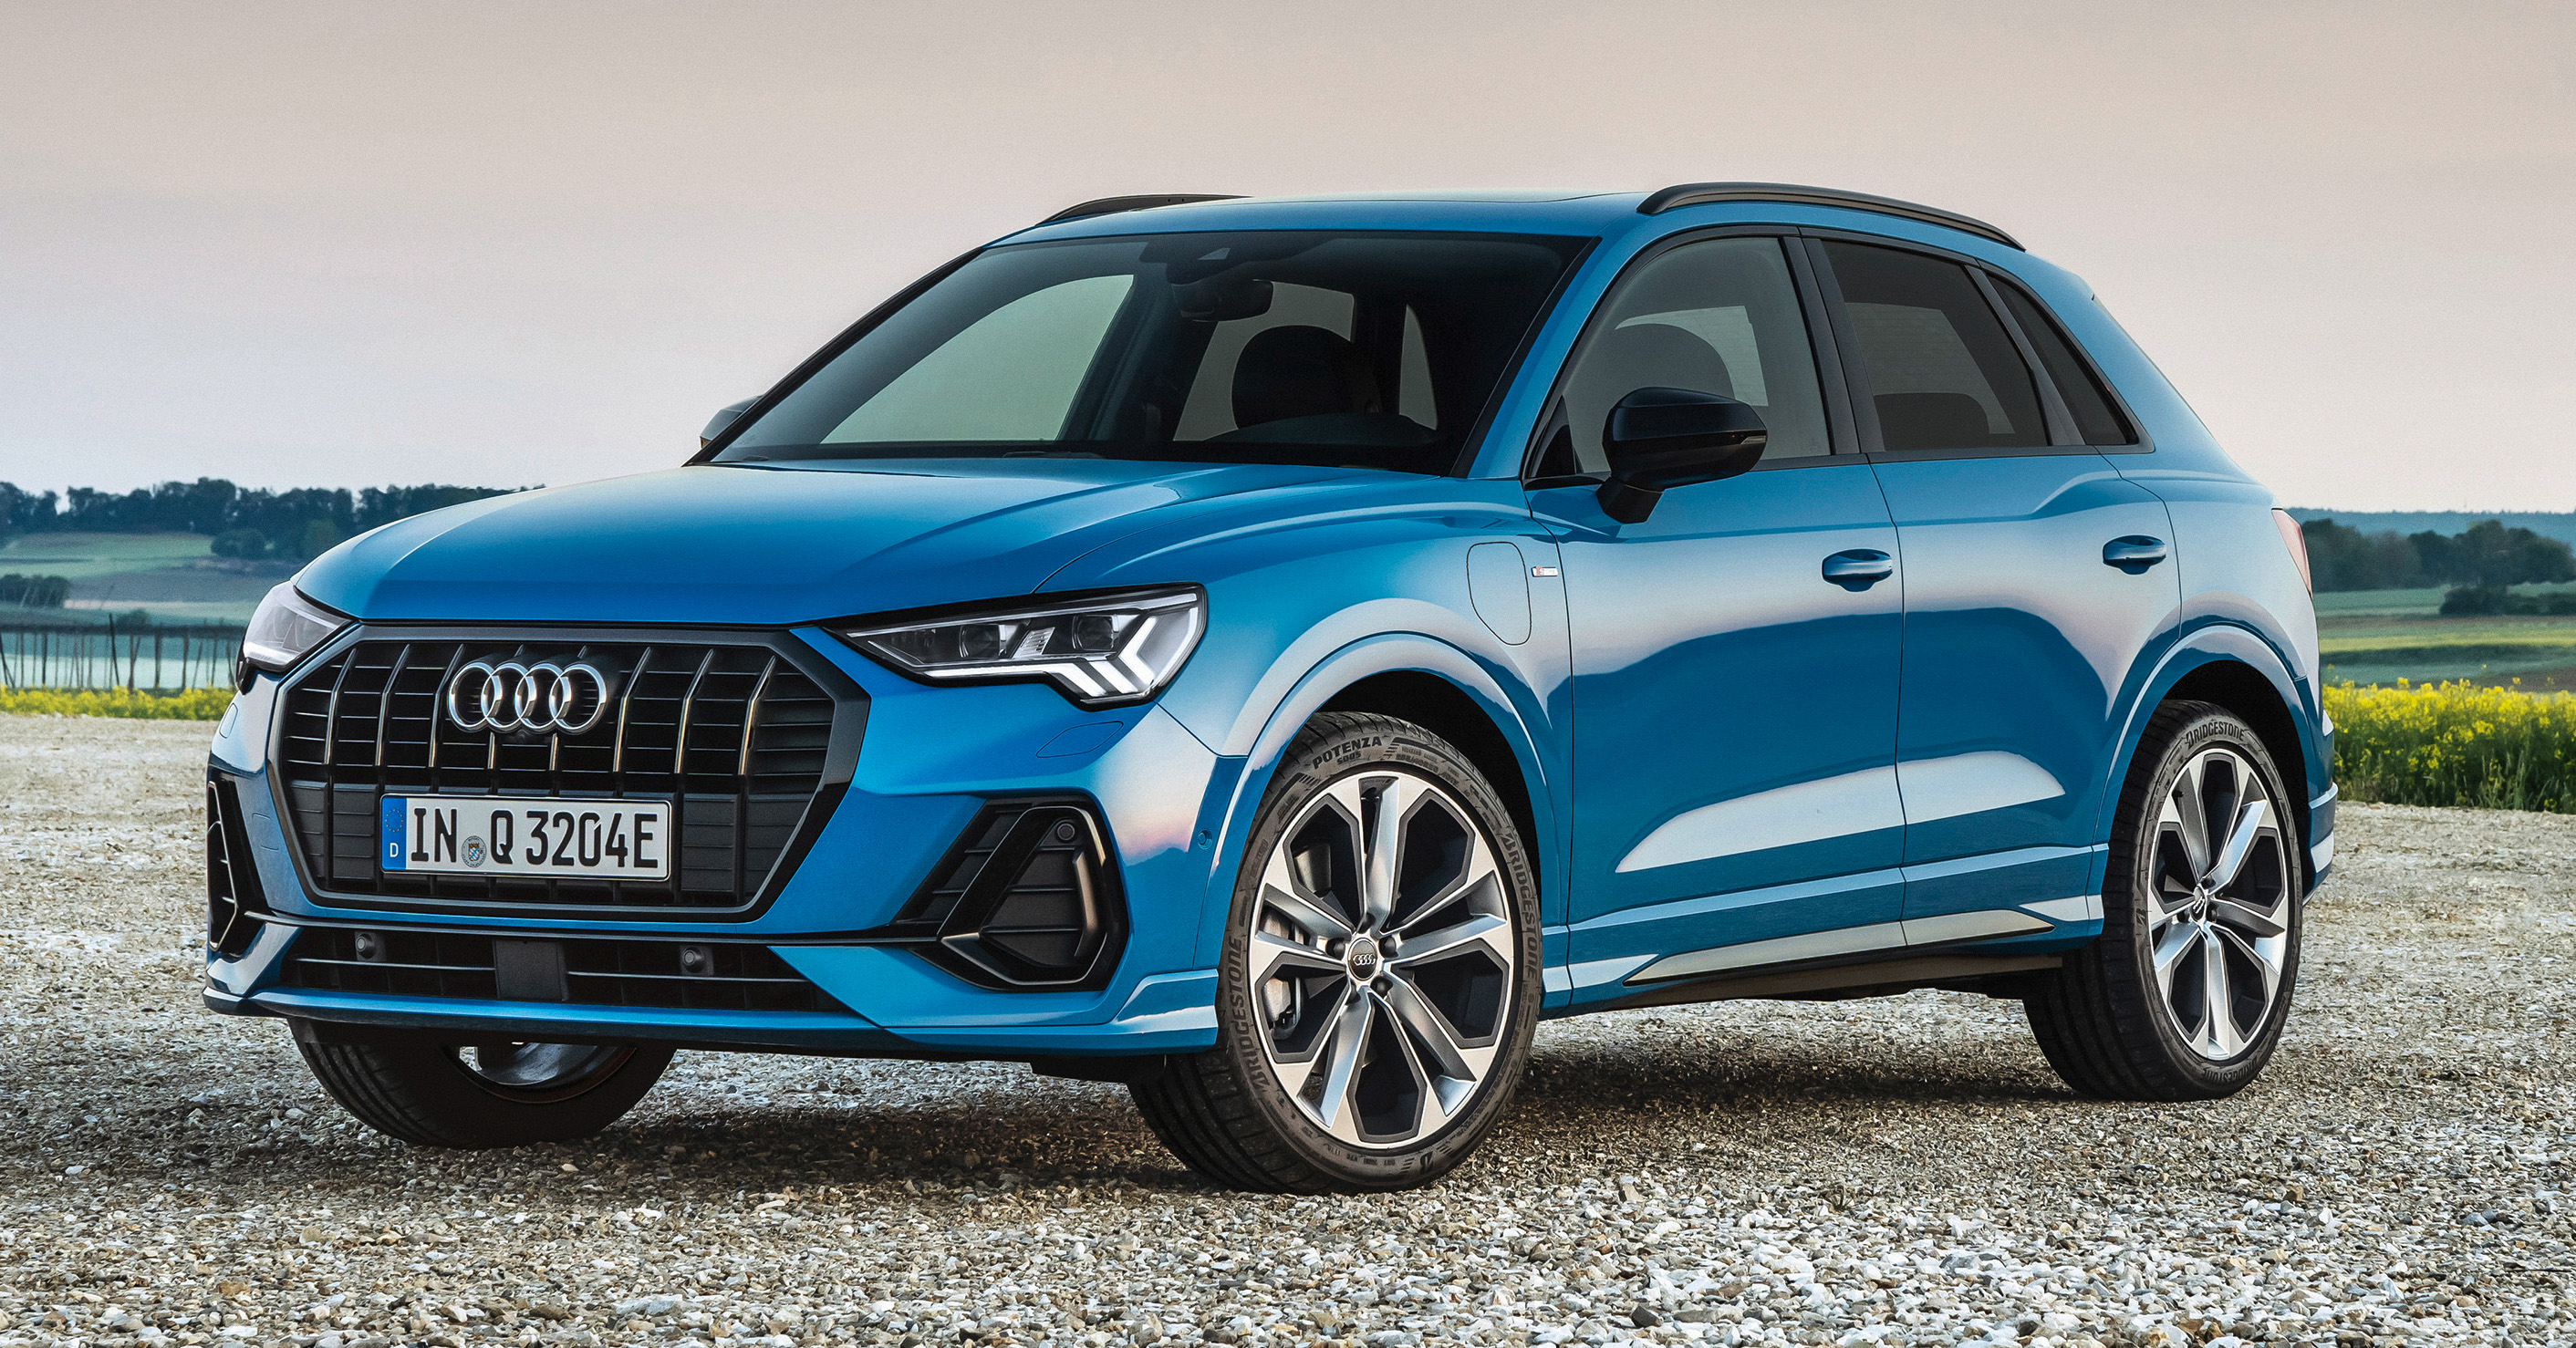 2021 Audi Q3 45 Tfsi E Debuts First Ever Compact Phev With 1 4l Engine 245 Ps 400 Nm 50 Km E Range Paultan Org